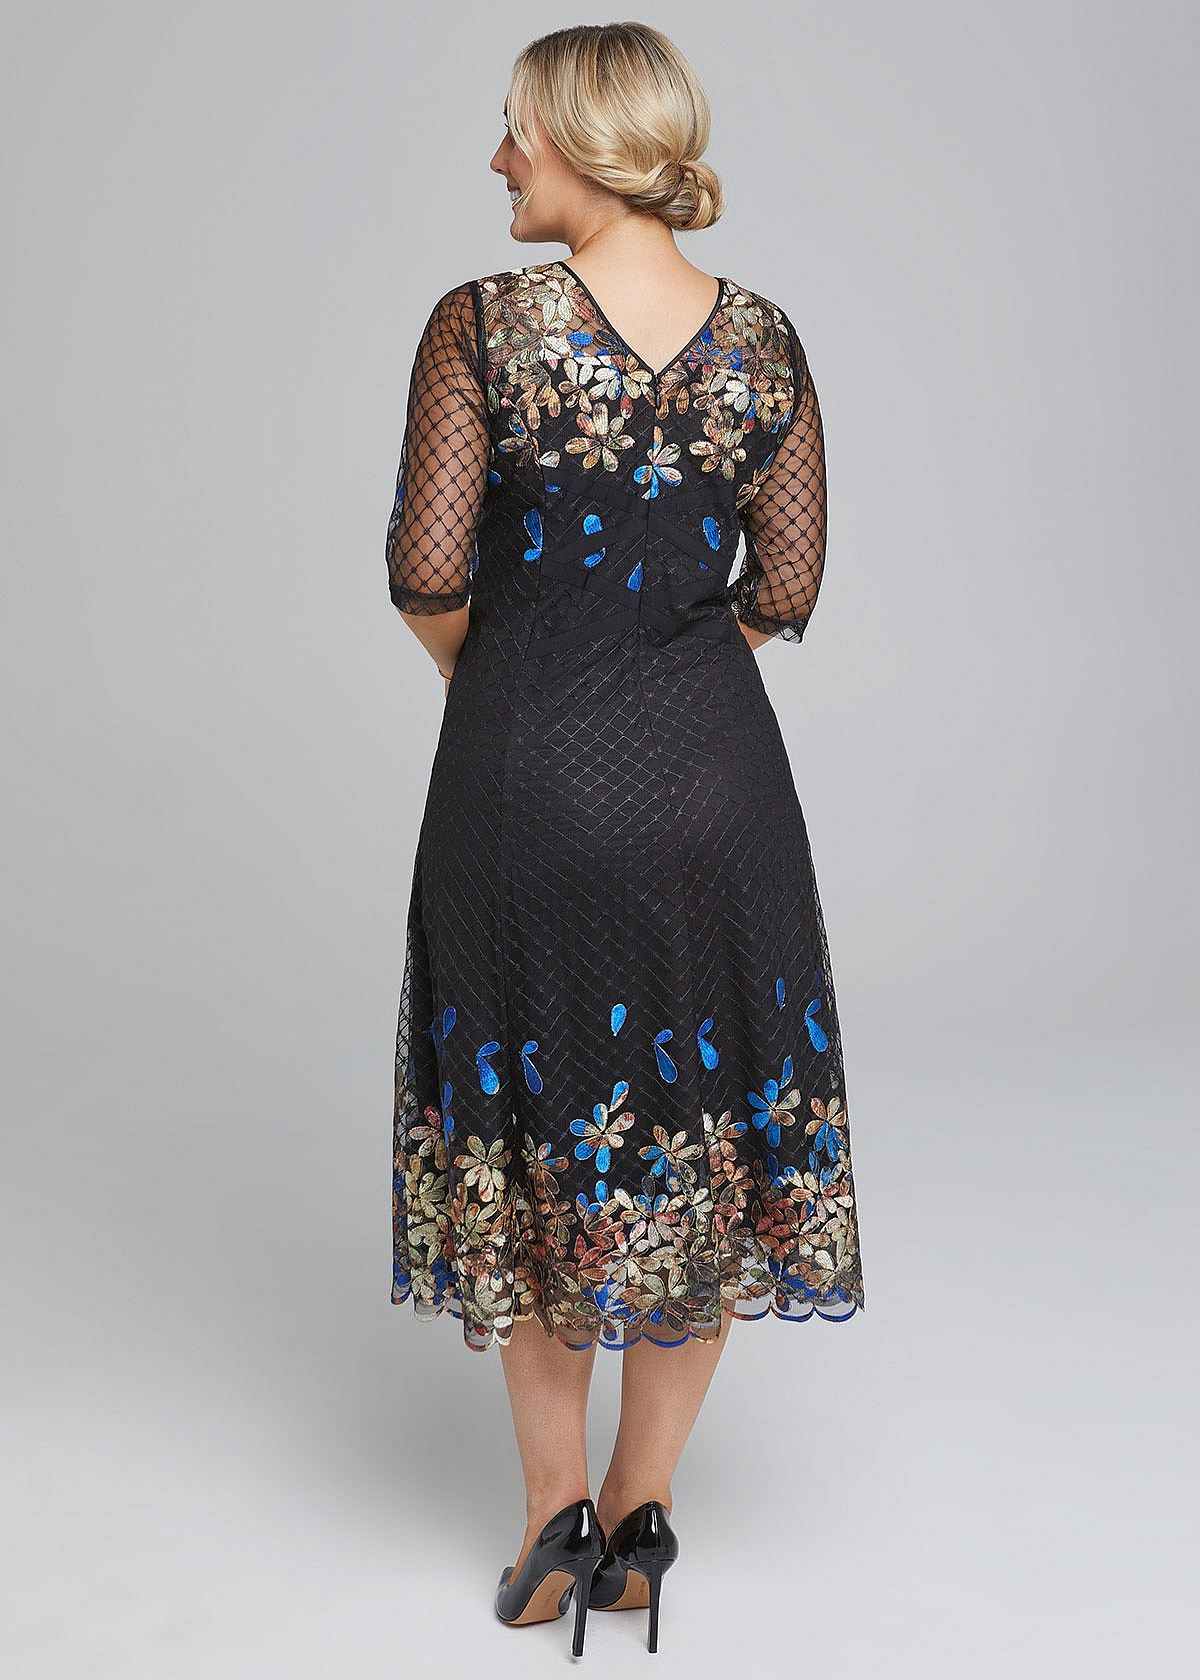 step out in style in the latest plus size fashion from